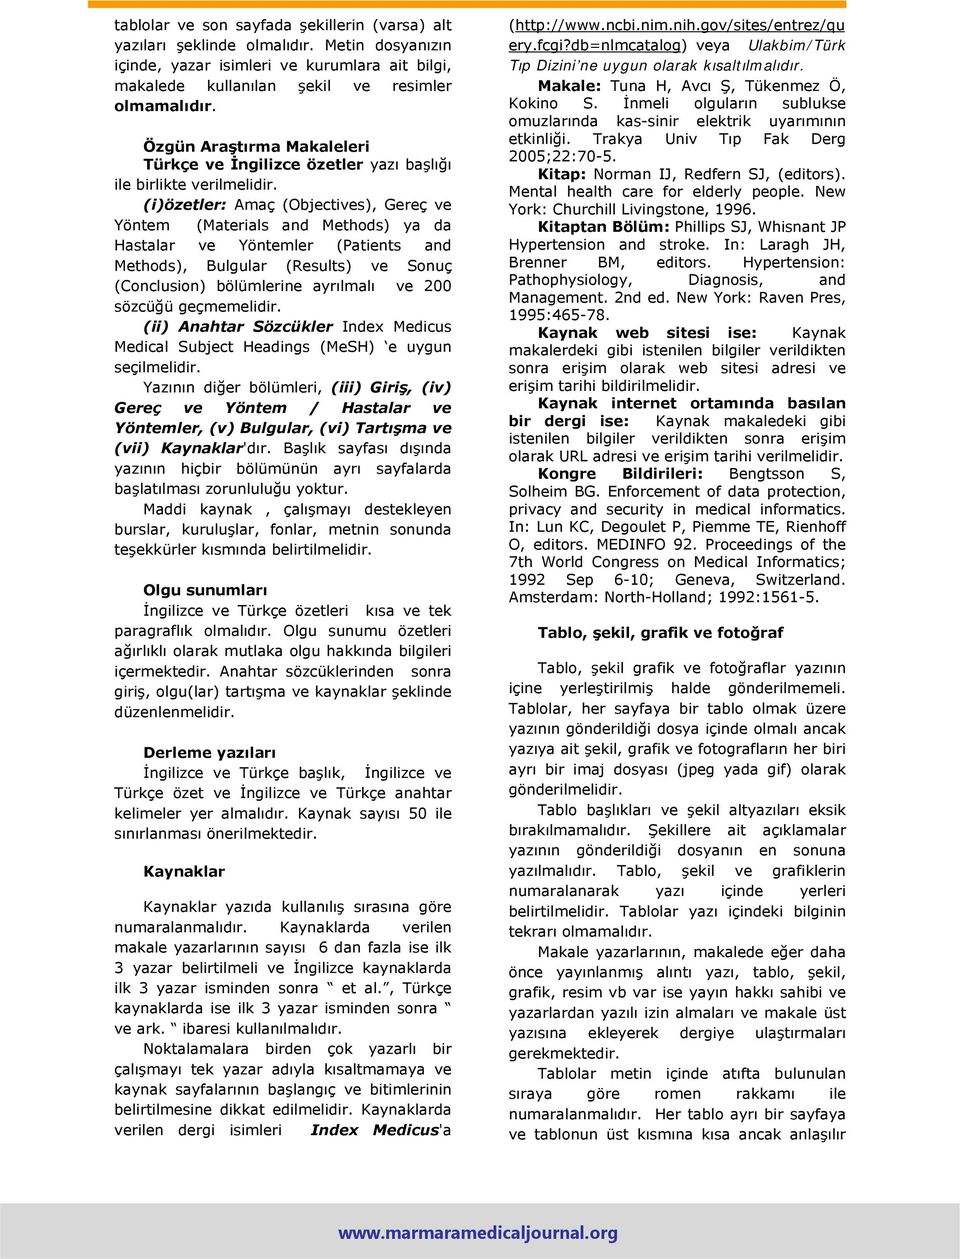 (i)özetler: Amaç (Objectives), Gereç ve Yöntem (Materials and Methods) ya da Hastalar ve Yöntemler (Patients and Methods), Bulgular (Results) ve Sonuç (Conclusion) bölümlerine ayrılmalı ve 200